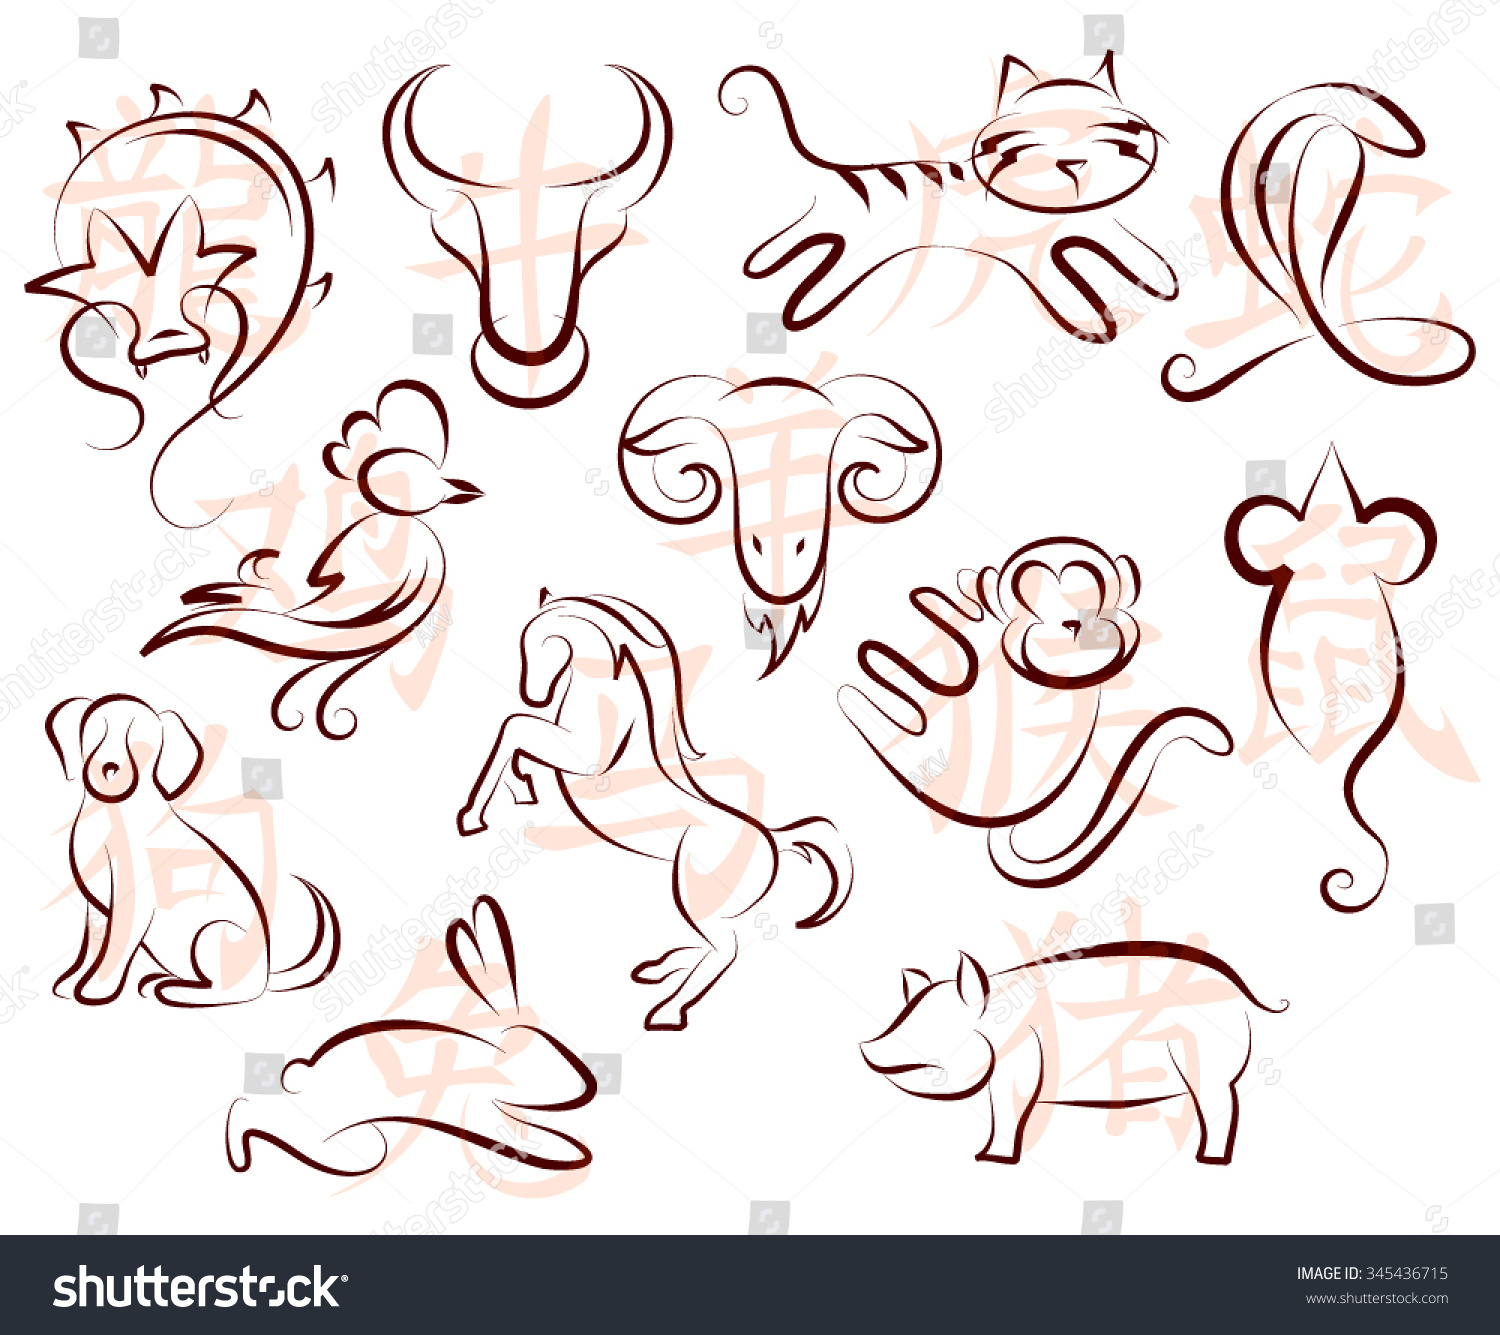 Zodiac Line Drawing : Horoscope symbol drawings gallery